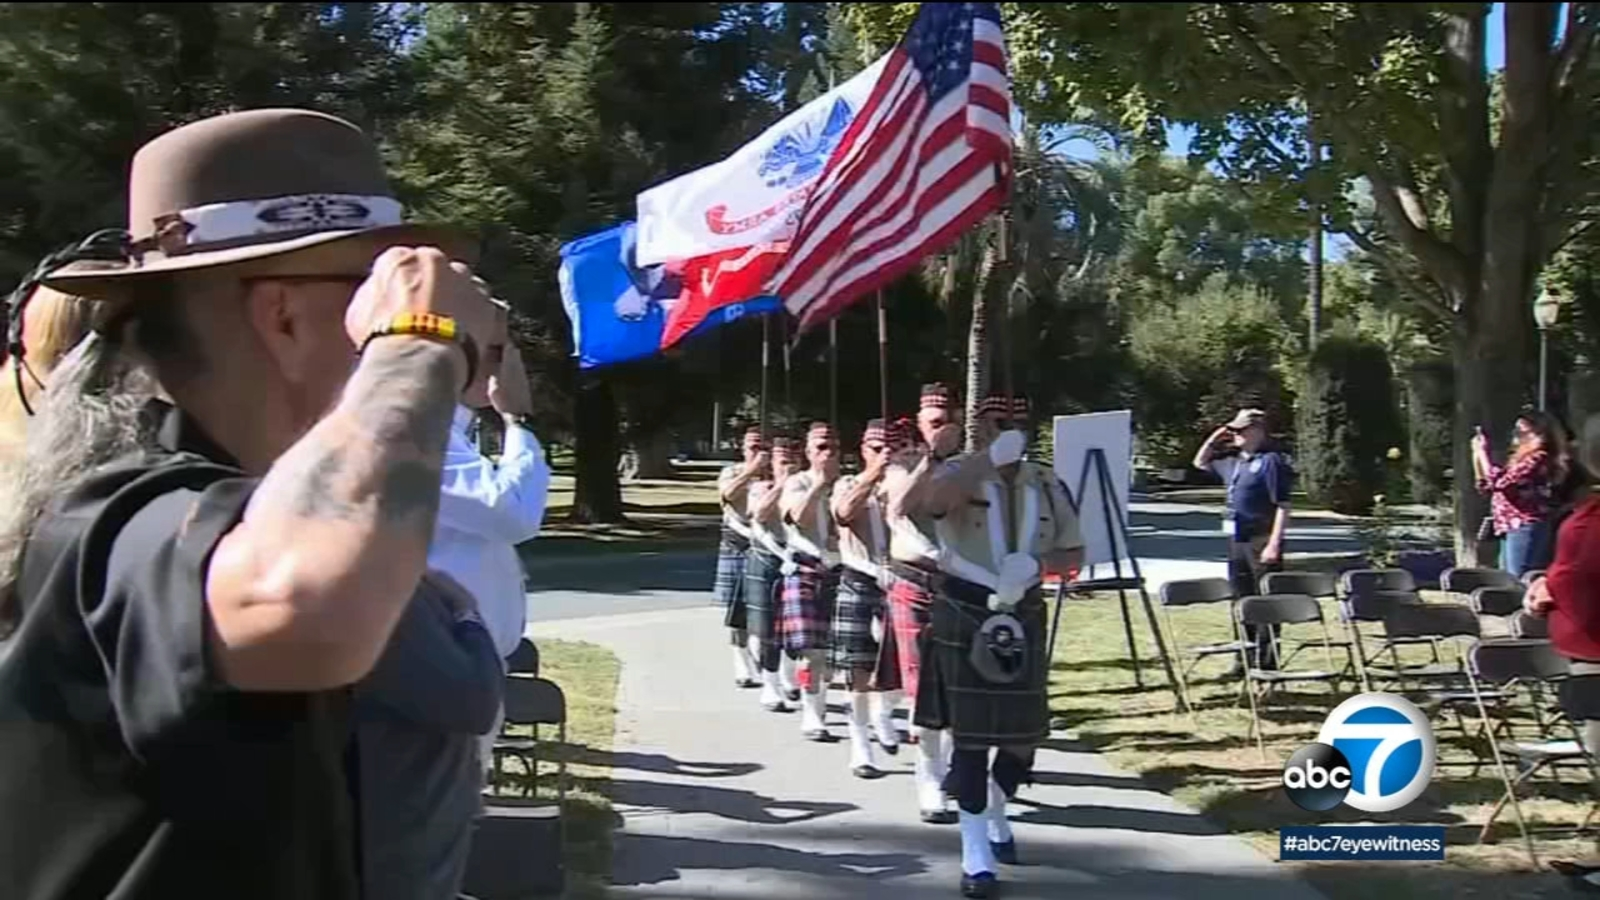 California's Vietnam veterans memorial made history as first woman was honored